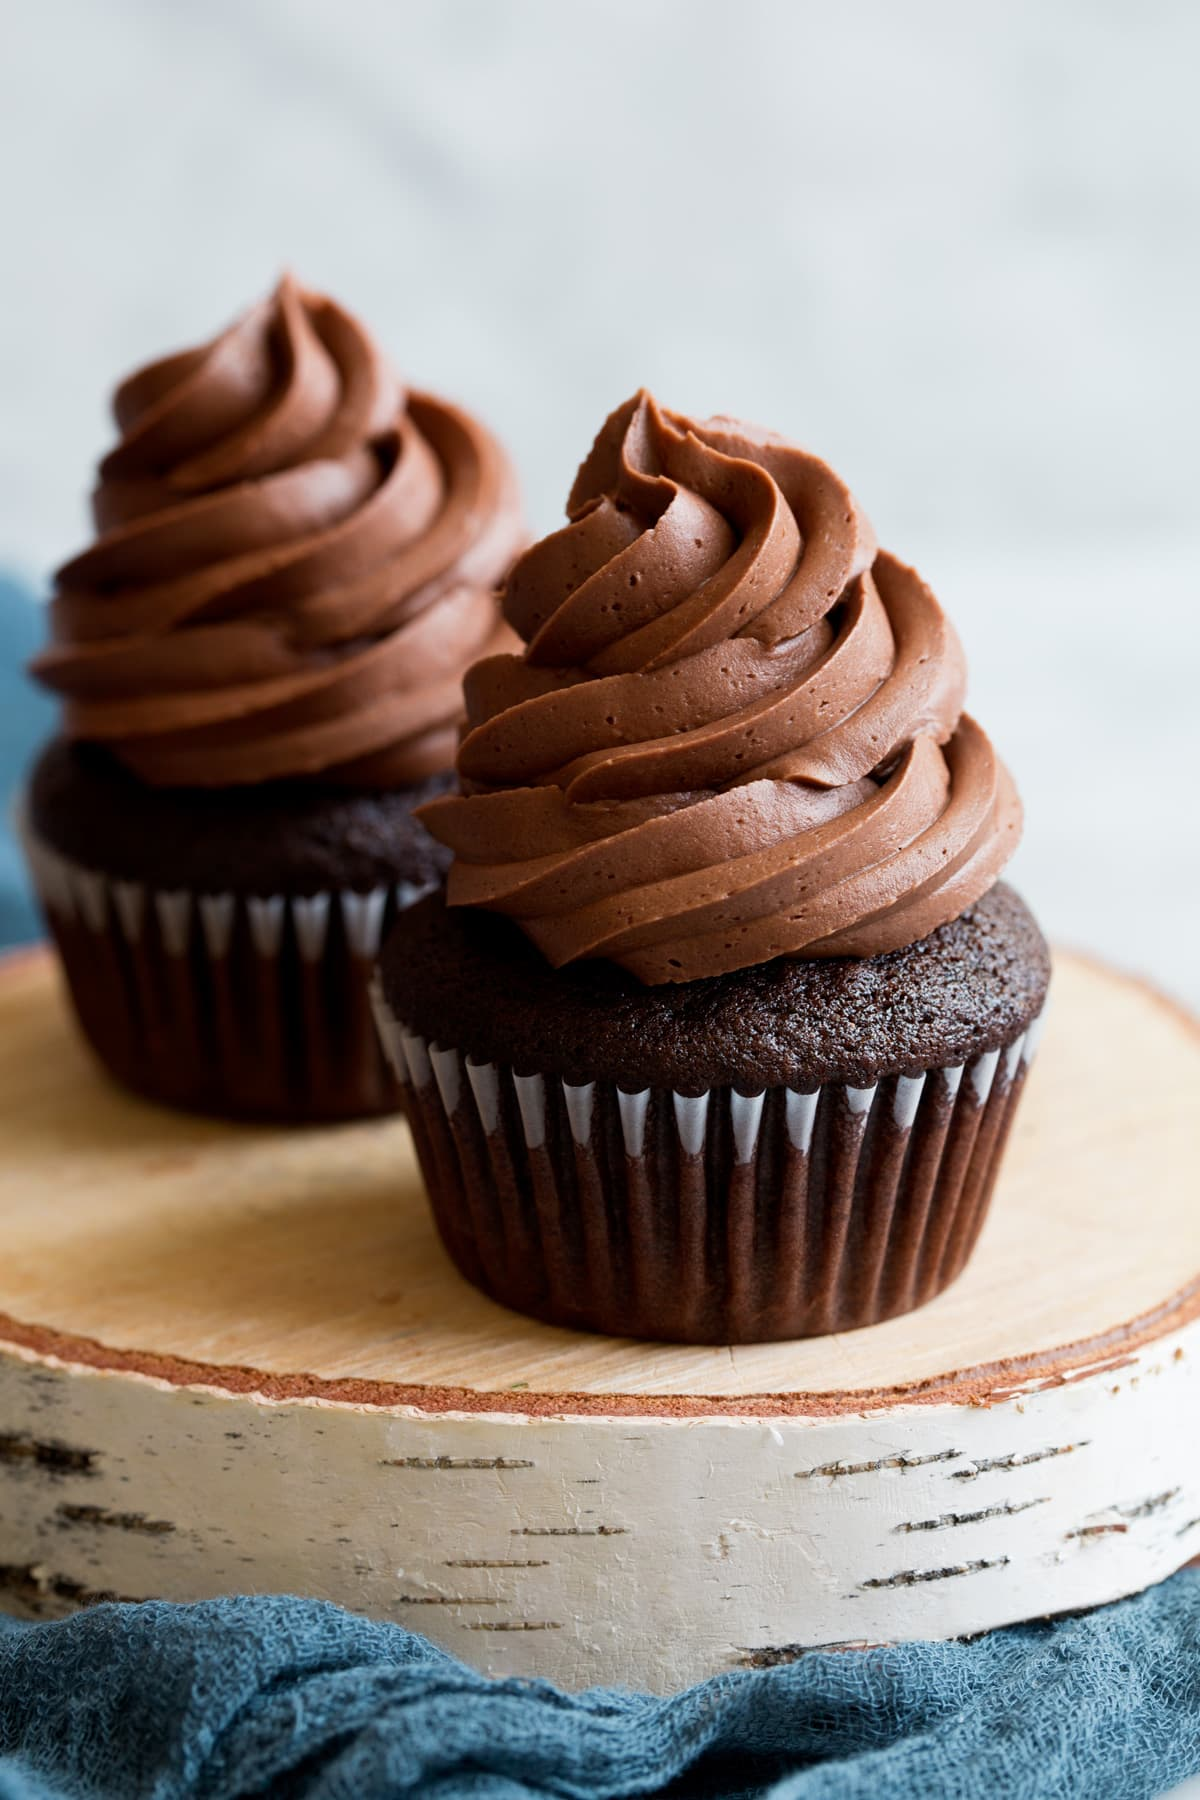 Chocolate buttercream frosting on top of chocolate cupcake